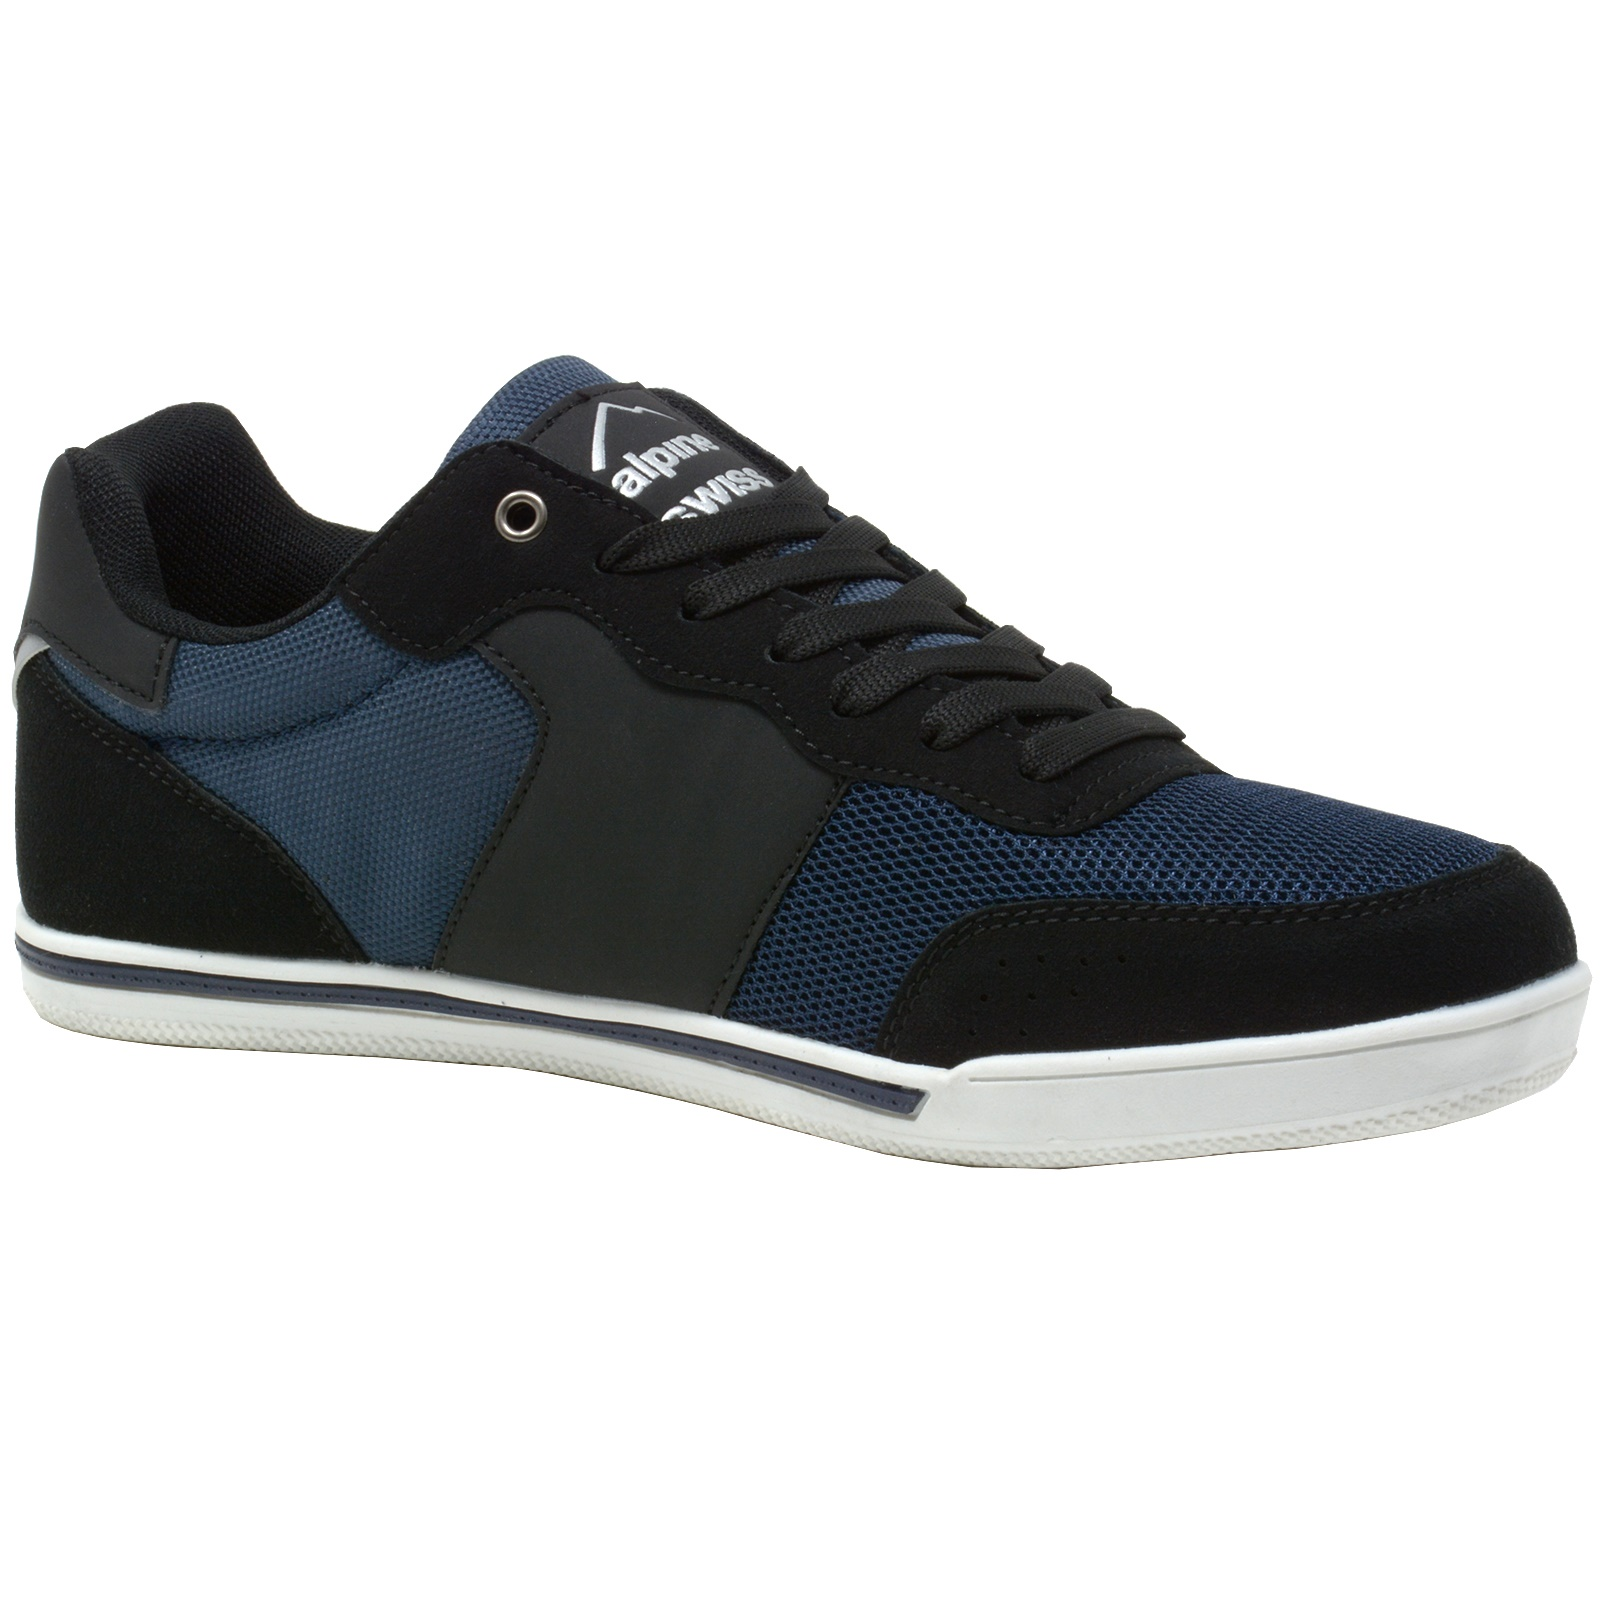 Alpine-Swiss-Liam-Mens-Fashion-Sneakers-Suede-Trim-Low-Top-Lace-Up-Tennis-Shoes thumbnail 38